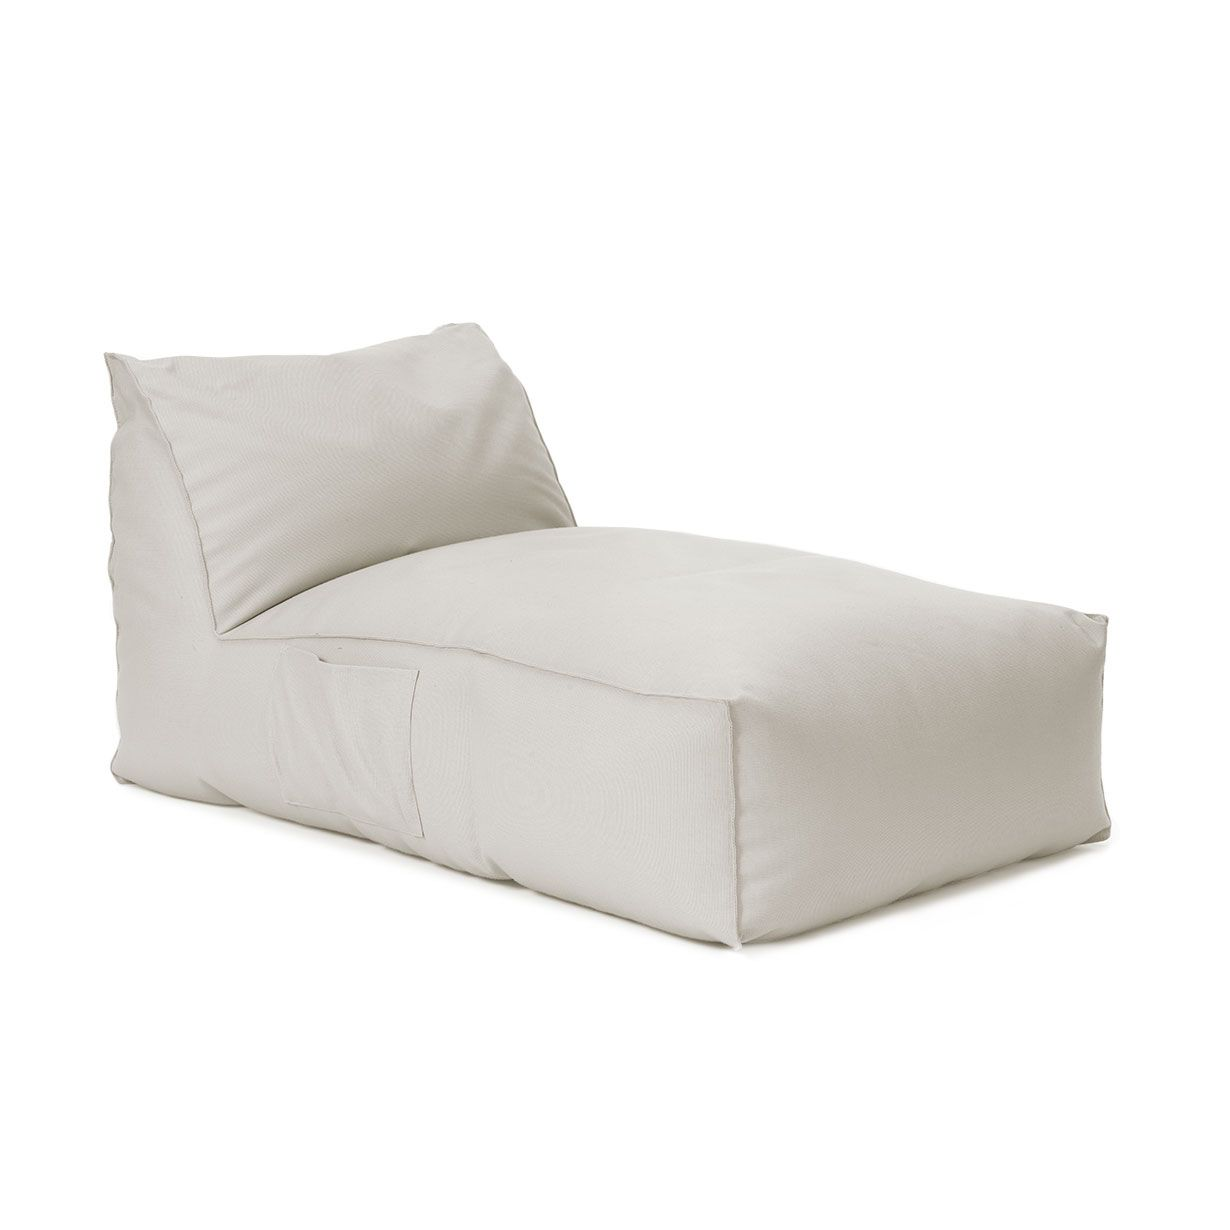 Soft Chaise Longue By Puffone Gart Www Lovethesign Com Uk Outdoor Chaise Lounge Easy Chair Furniture